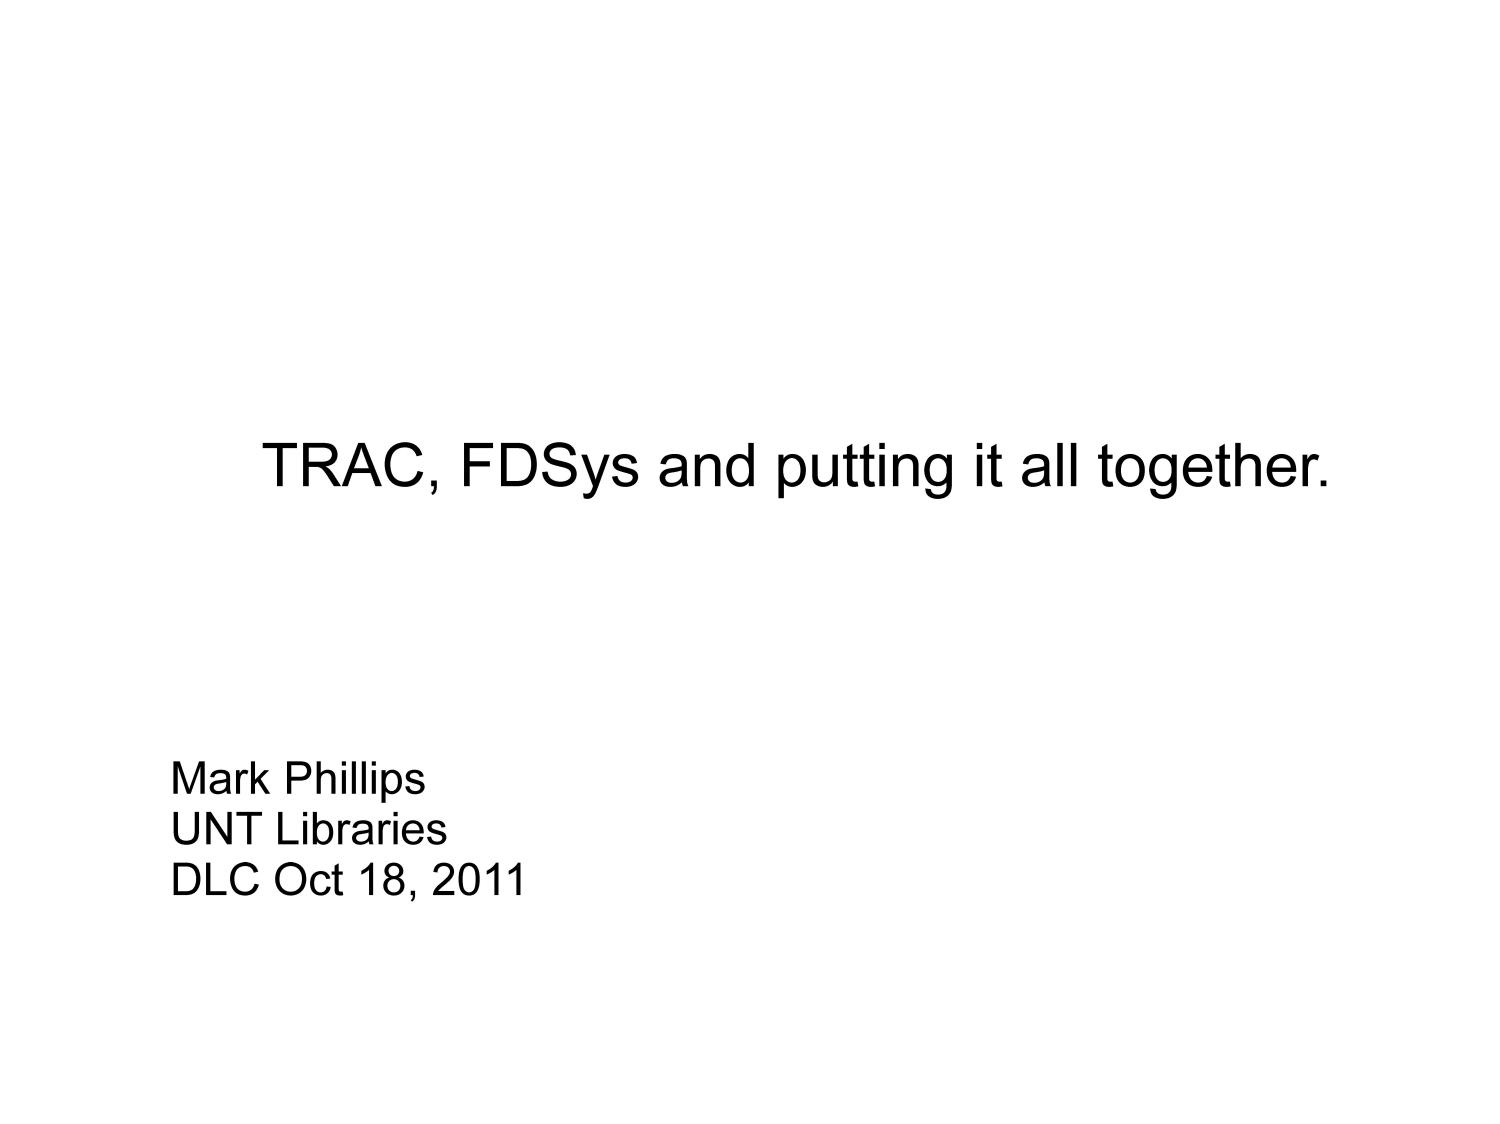 TRAC, FDSys and putting it all together                                                                                                      [Sequence #]: 1 of 30